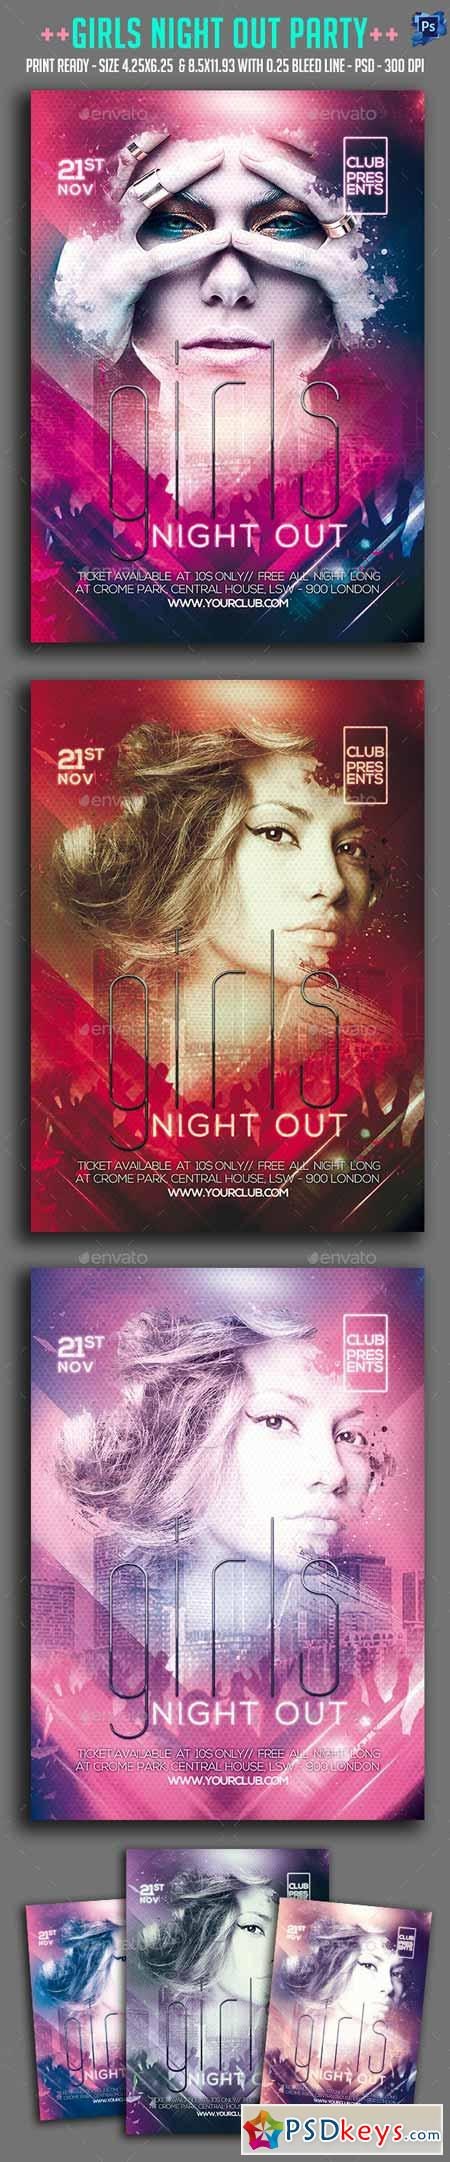 Girls Night Out Party Flyer 13220670